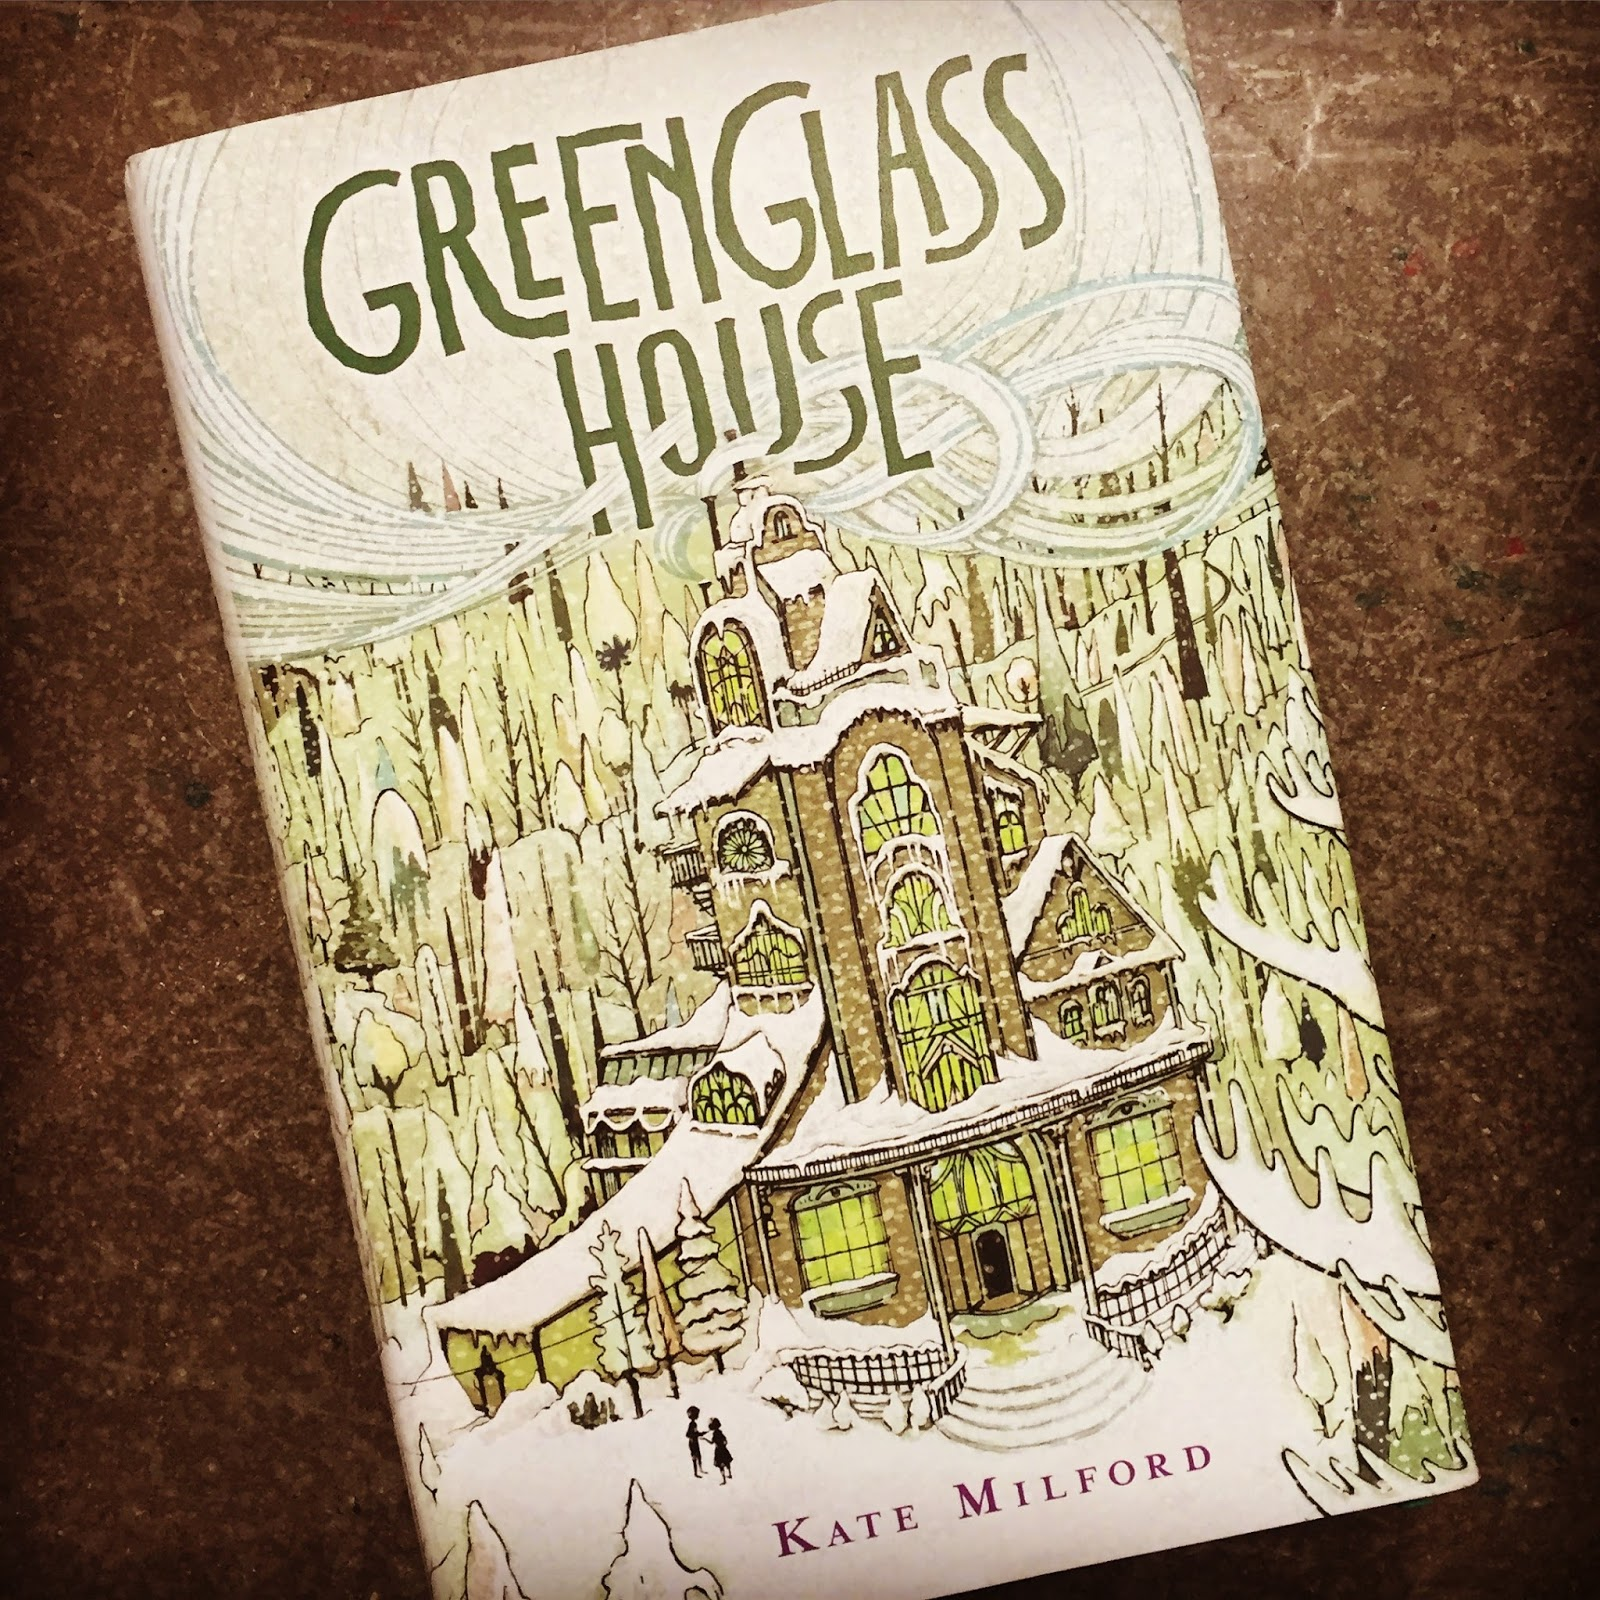 greenglass house image from hansonhallway blogspot com